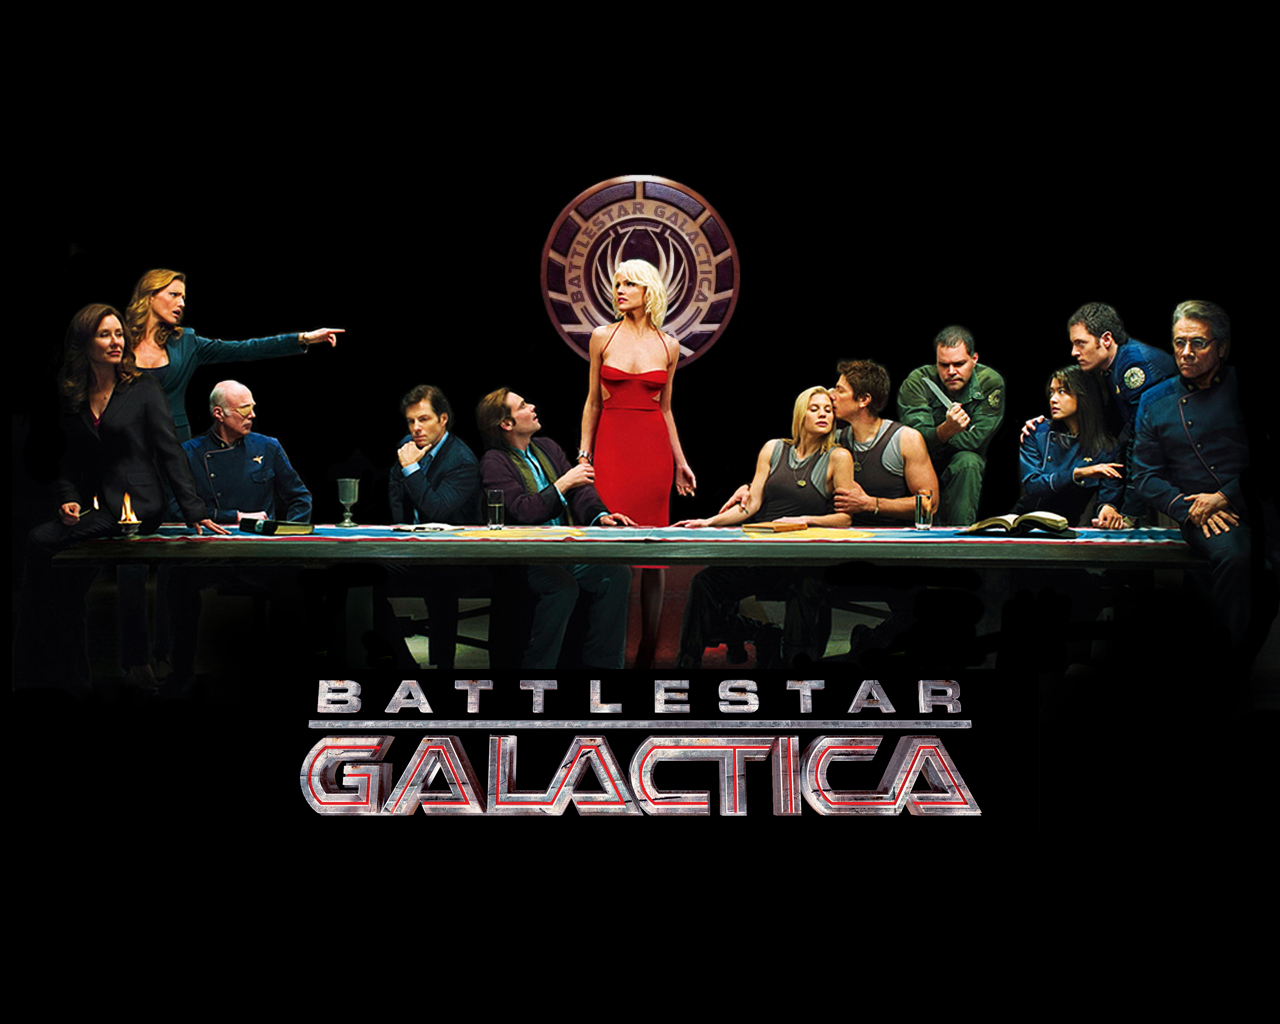 Battlestar Galactica (2003) Backgrounds on Wallpapers Vista